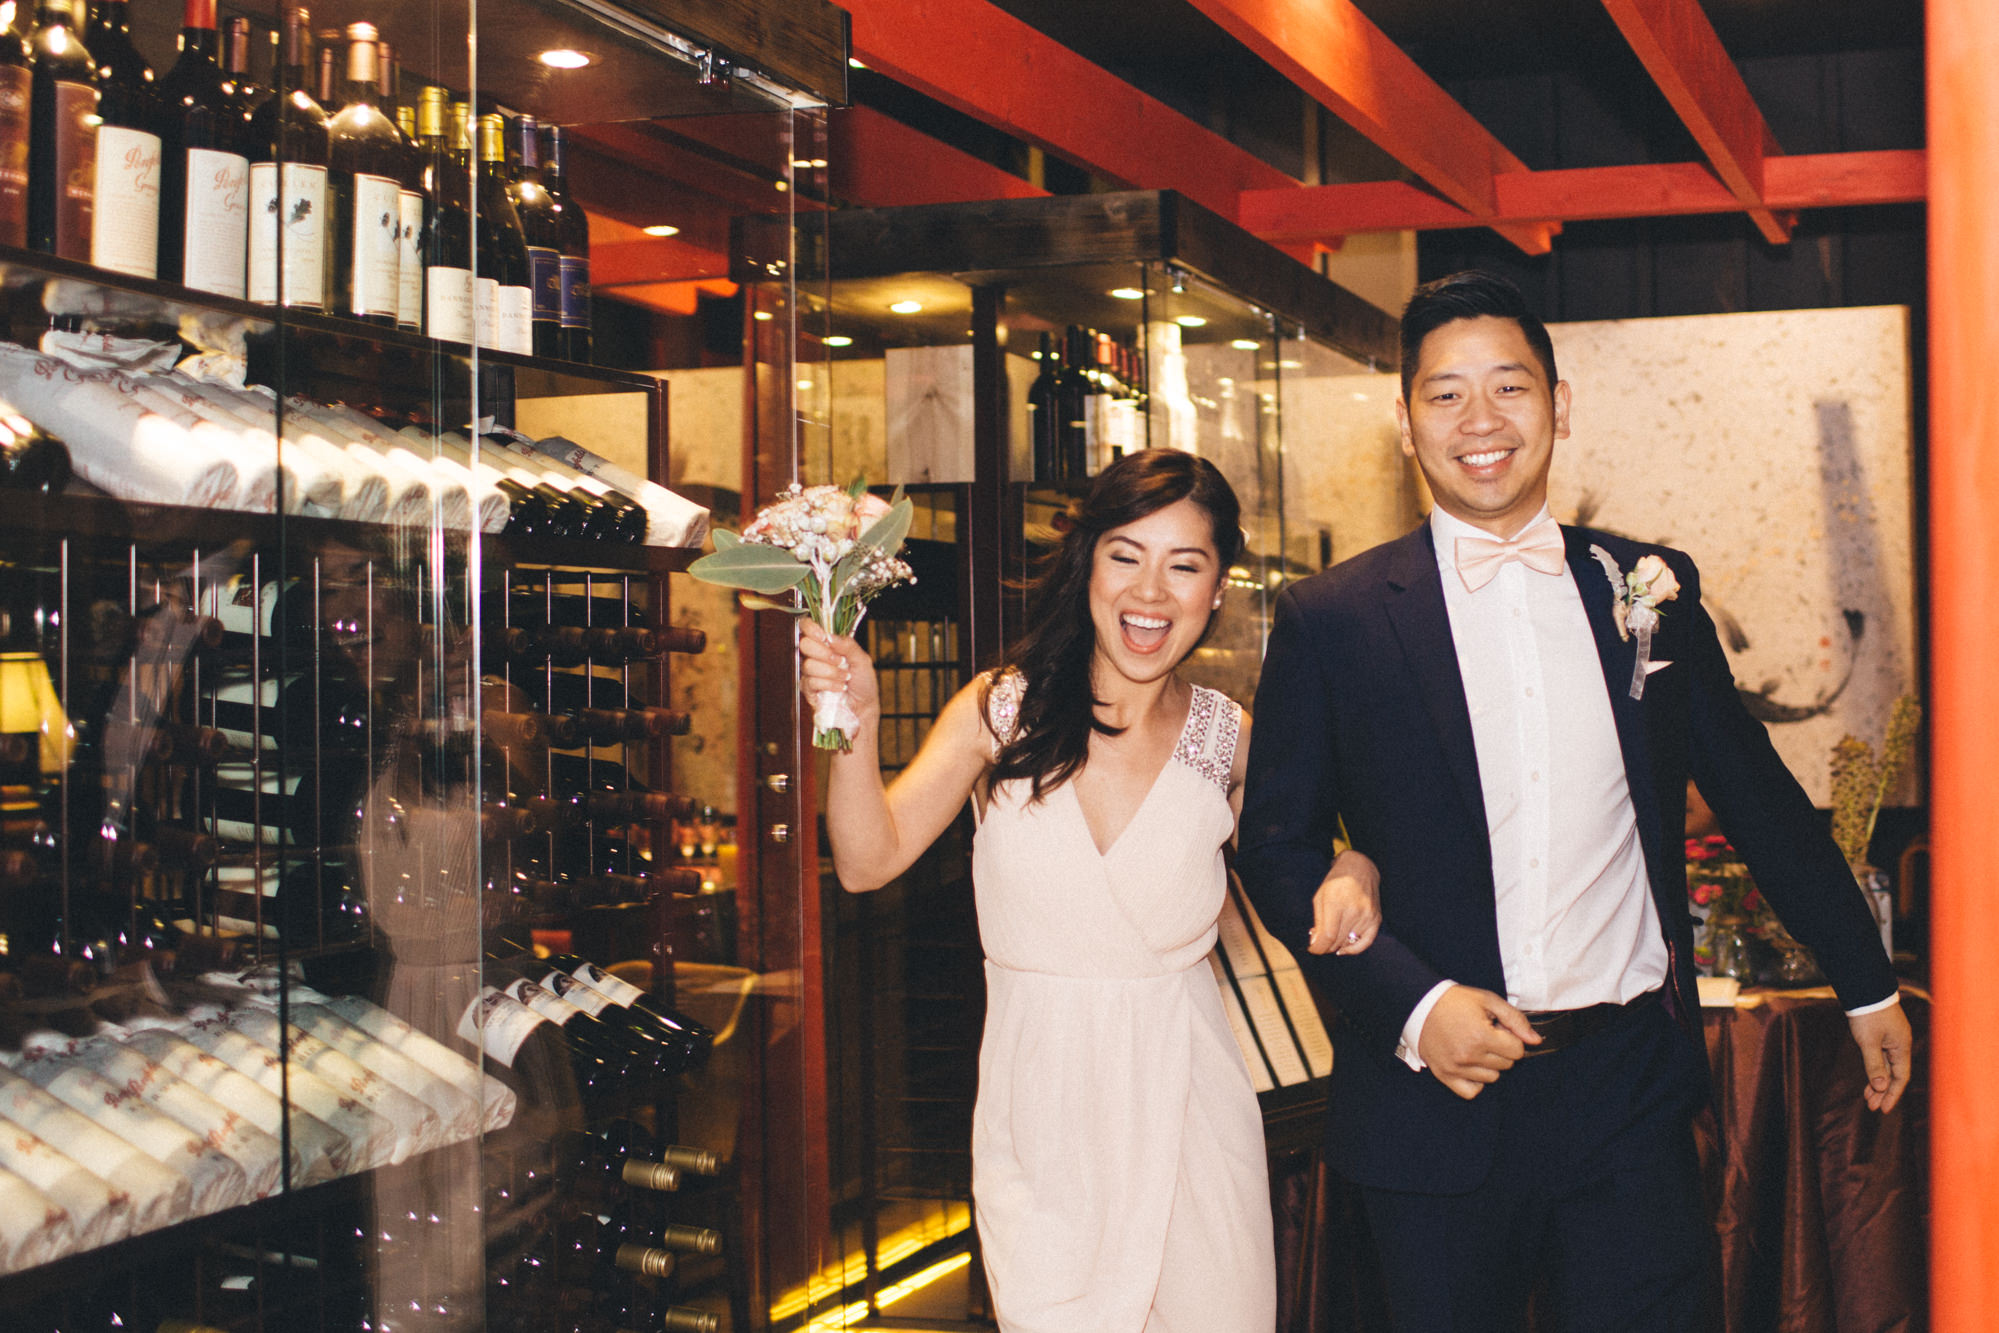 Allee & Rob - Singapore Wedding Photography (45 of 60).jpg